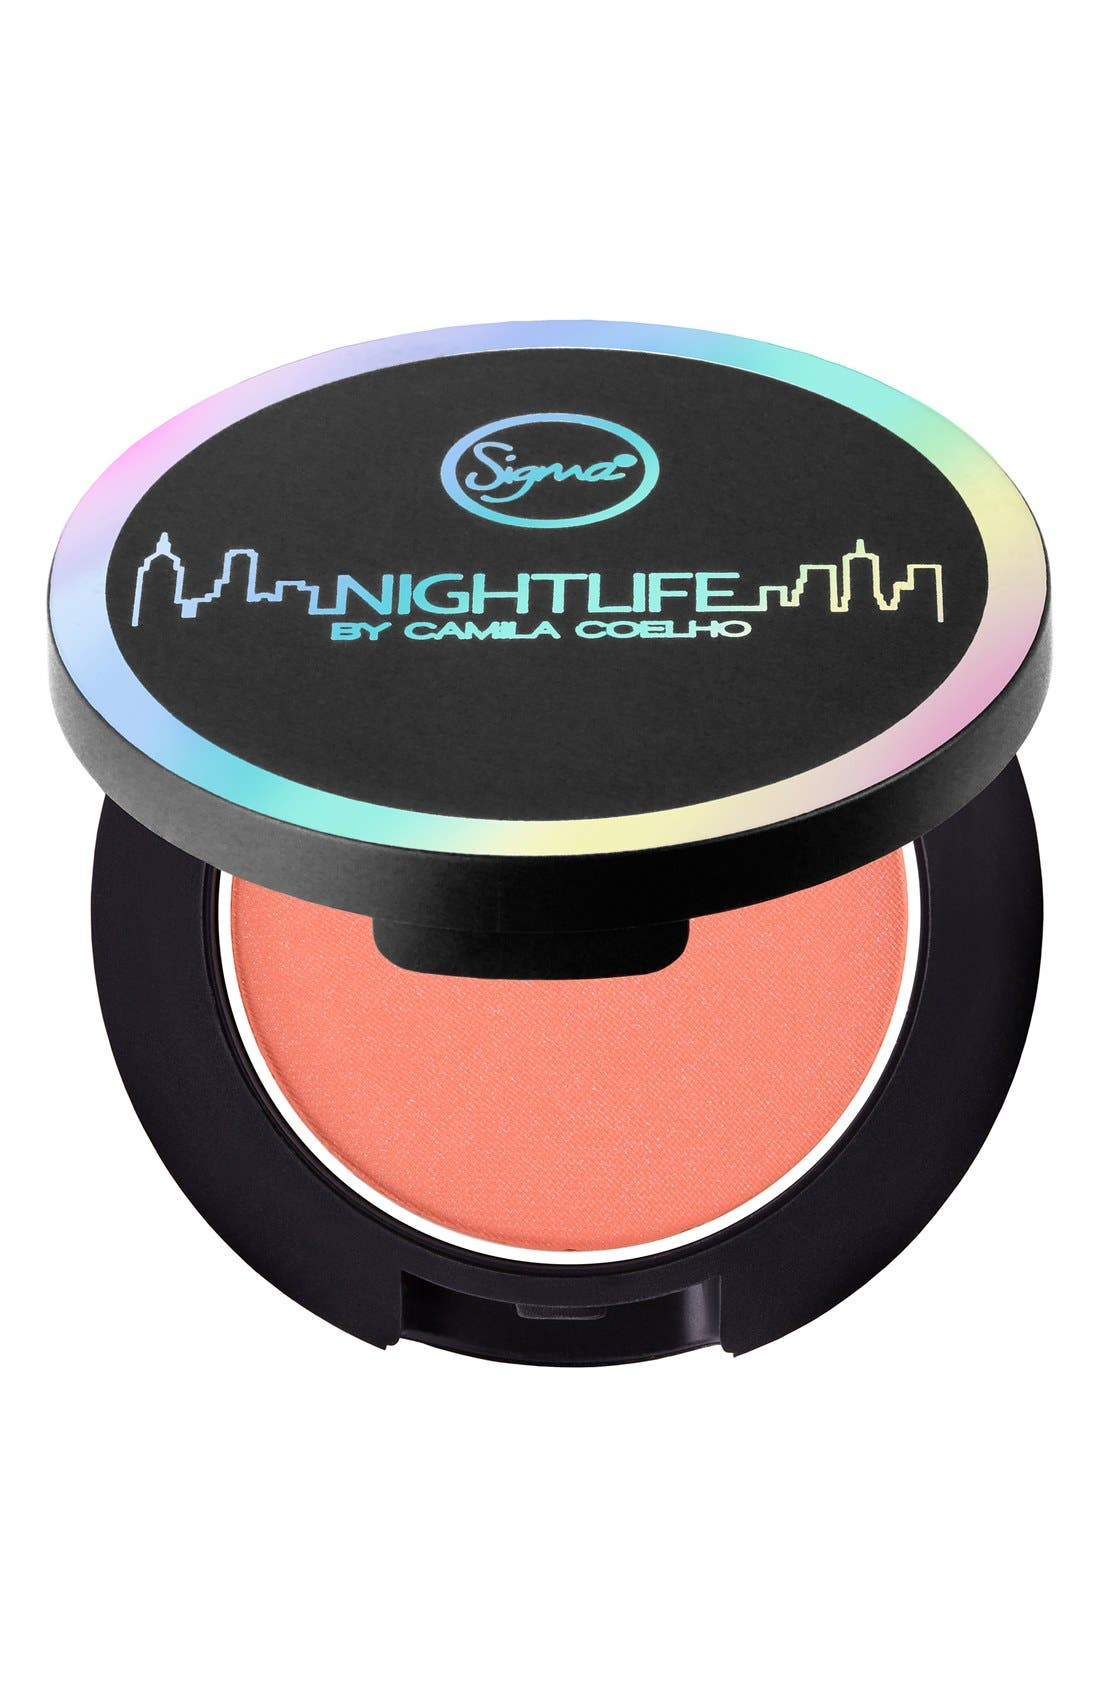 Sigma Beauty Powder Blush